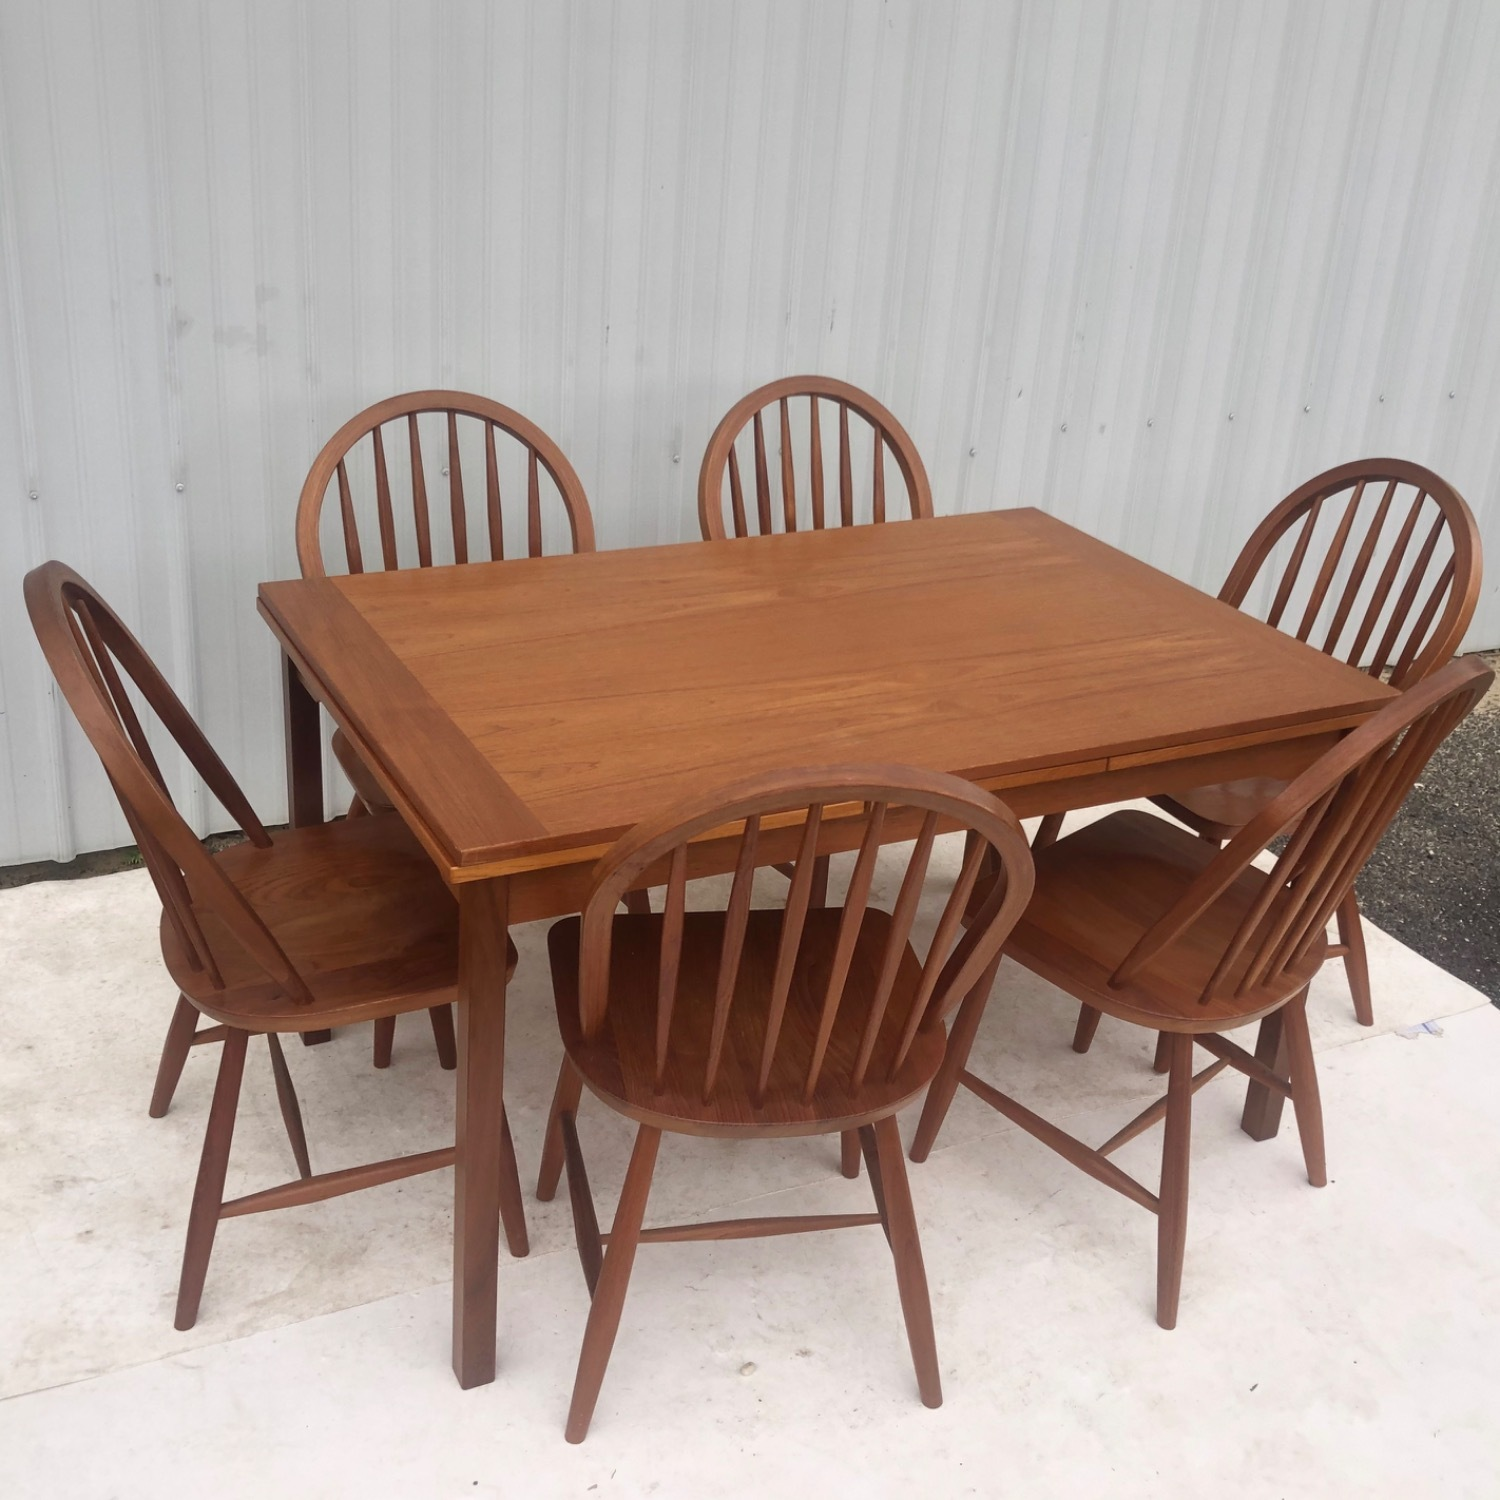 Vintage Modern Dining Set w/ Six Chairs - image-3